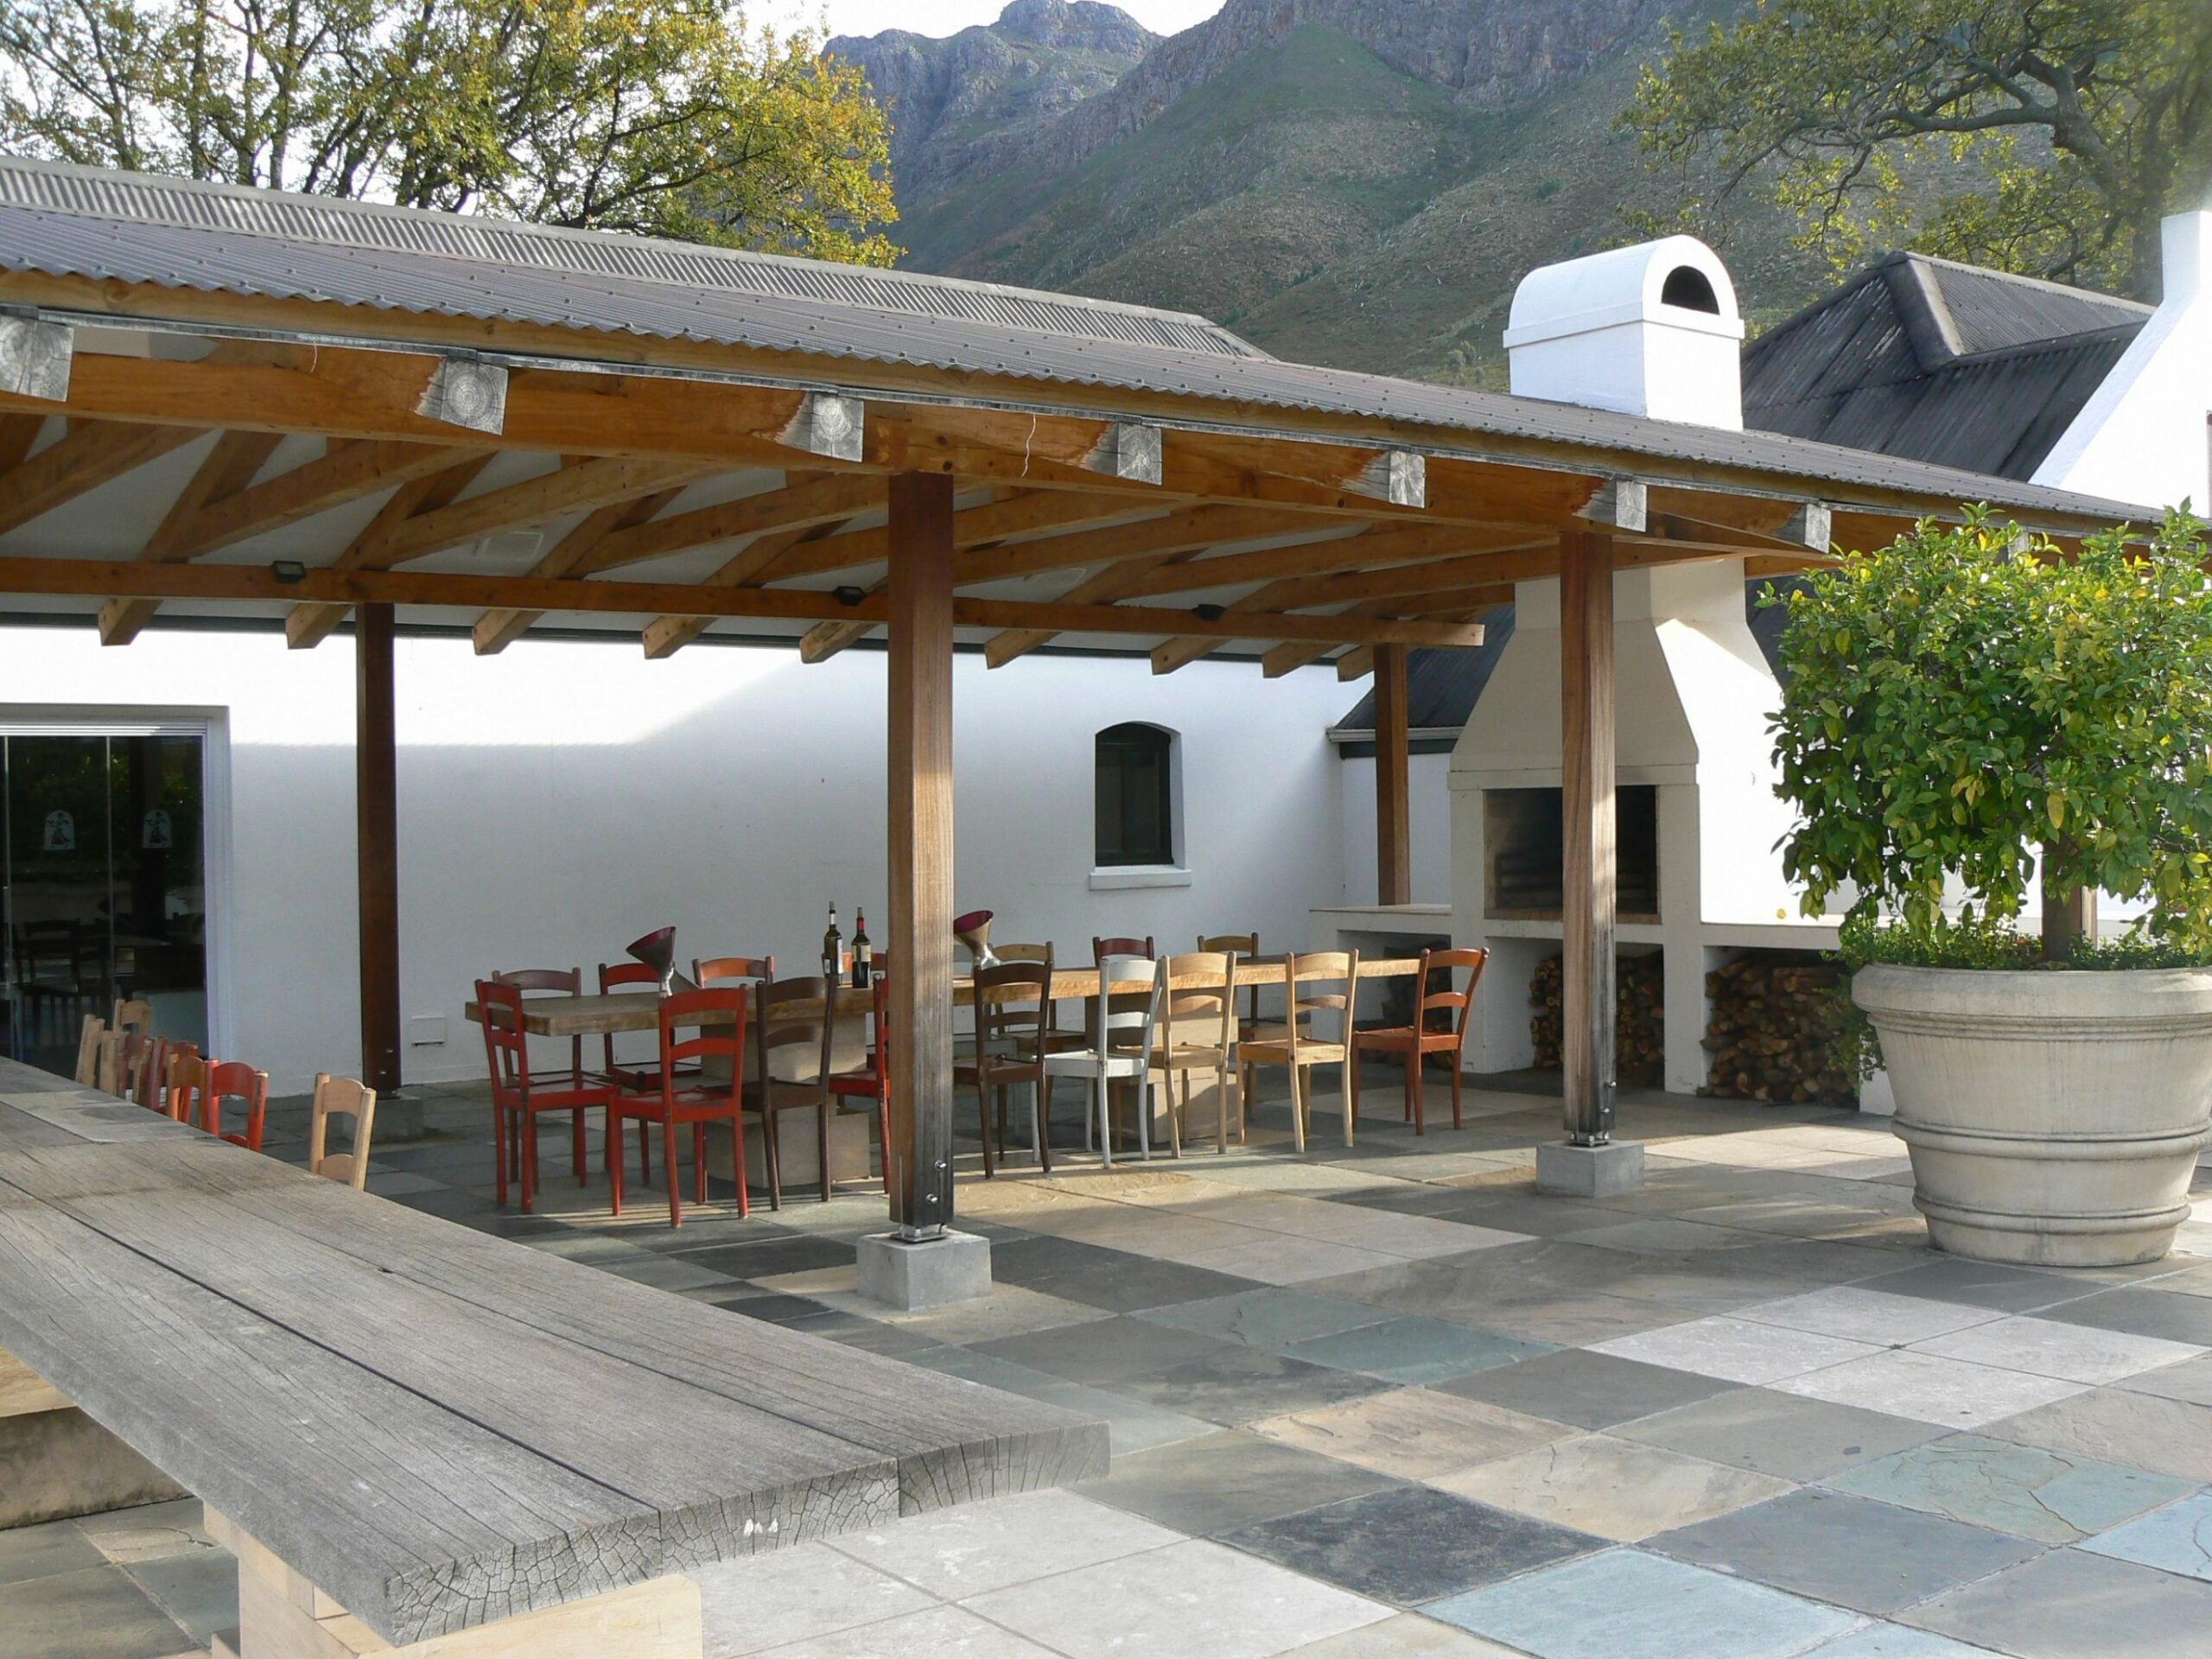 Patio at Boekenhoutskloof in Franschhoek, South Africa. Photo from ..